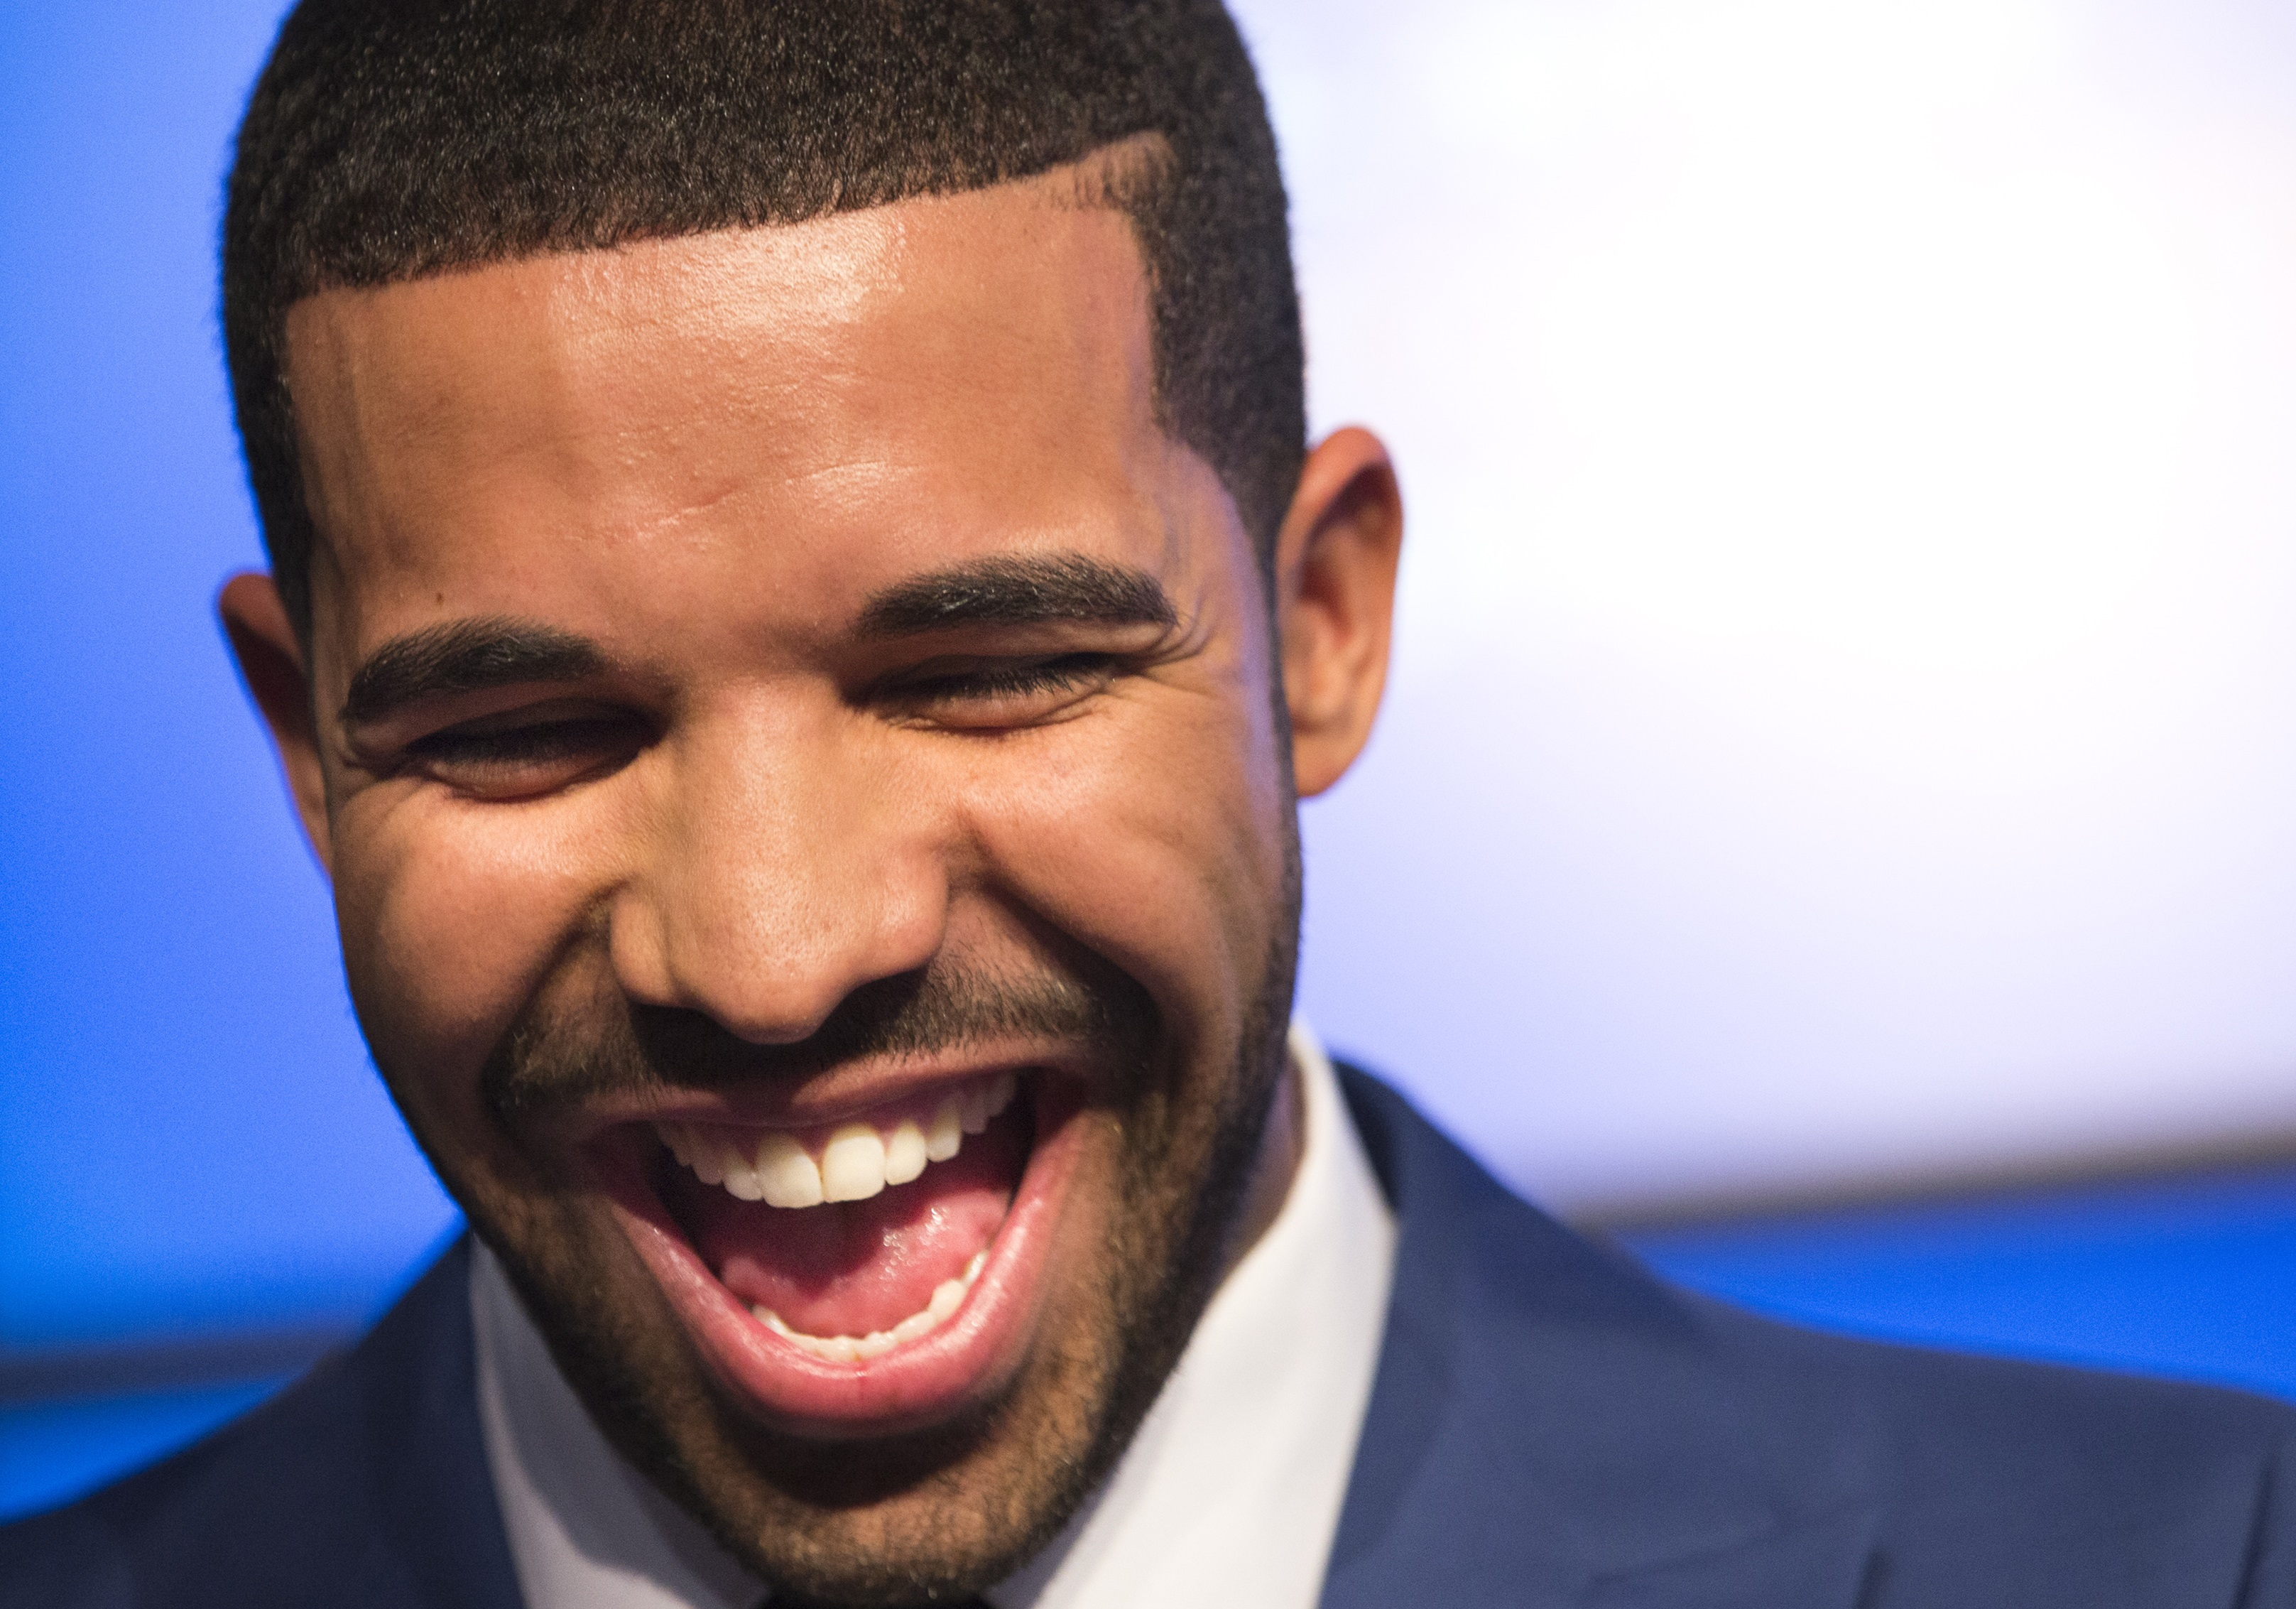 DRAKE DROPS SOME POWERFUL WORDS OF WISDOM ABOUT SUCCESS! (MOTIVATIONAL VIDEO)